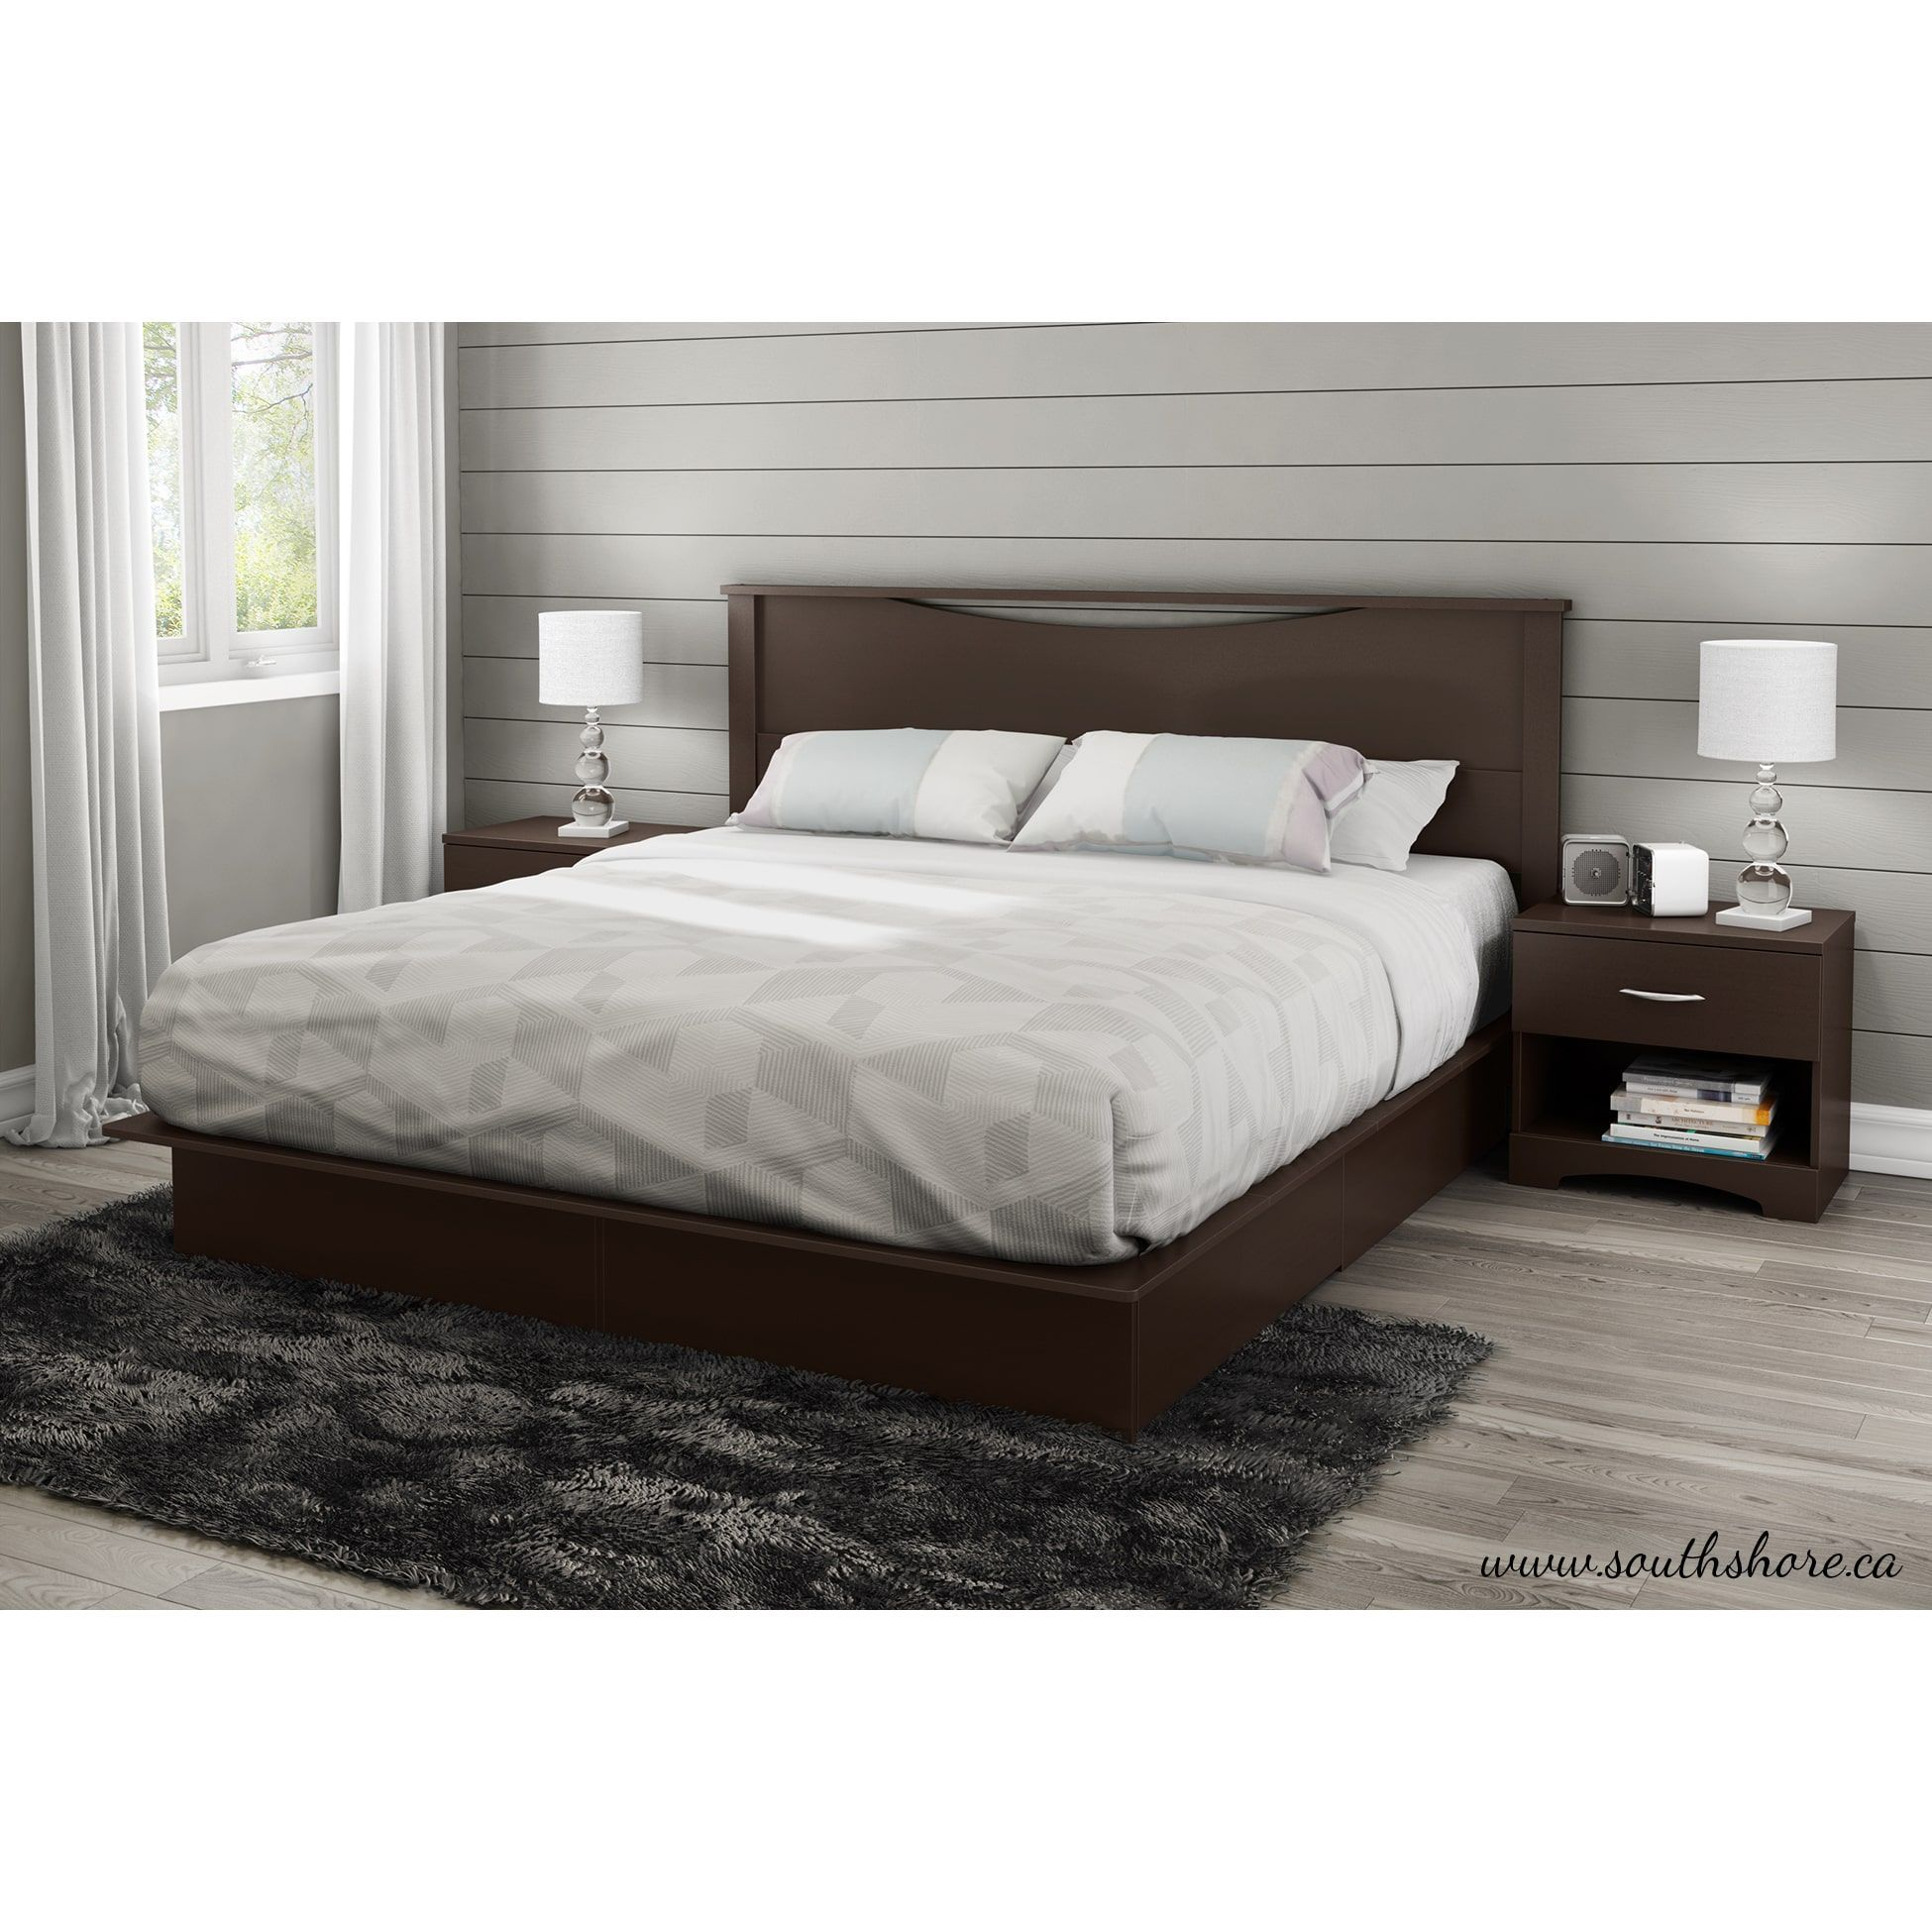 South Shore Step One Headboard In 2020 King Size Platform Bed